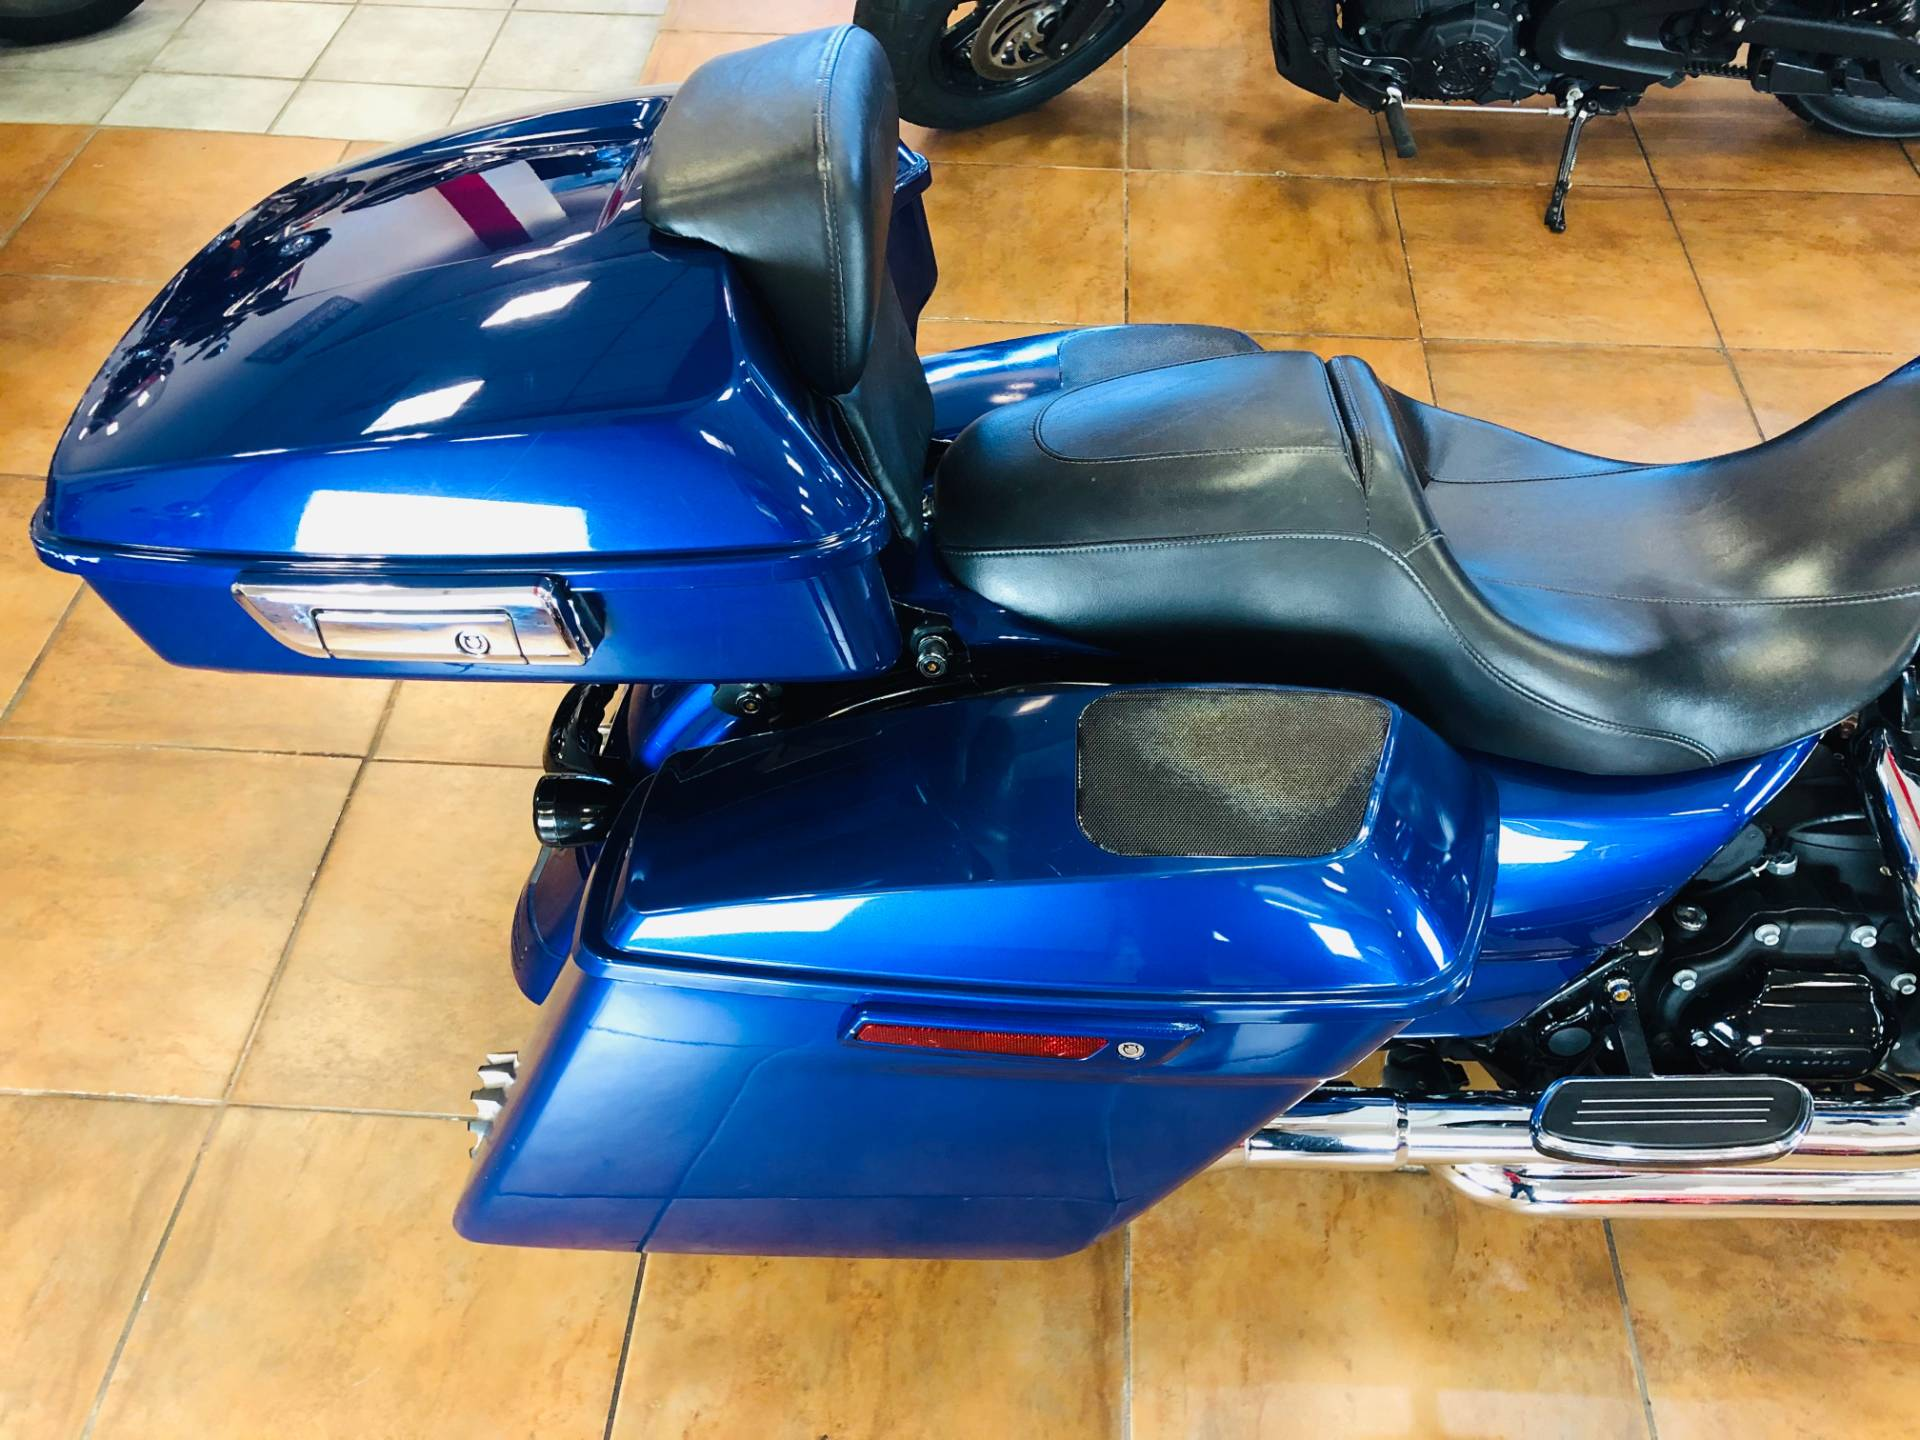 2017 Harley-Davidson Street Glide® Special in Pinellas Park, Florida - Photo 10